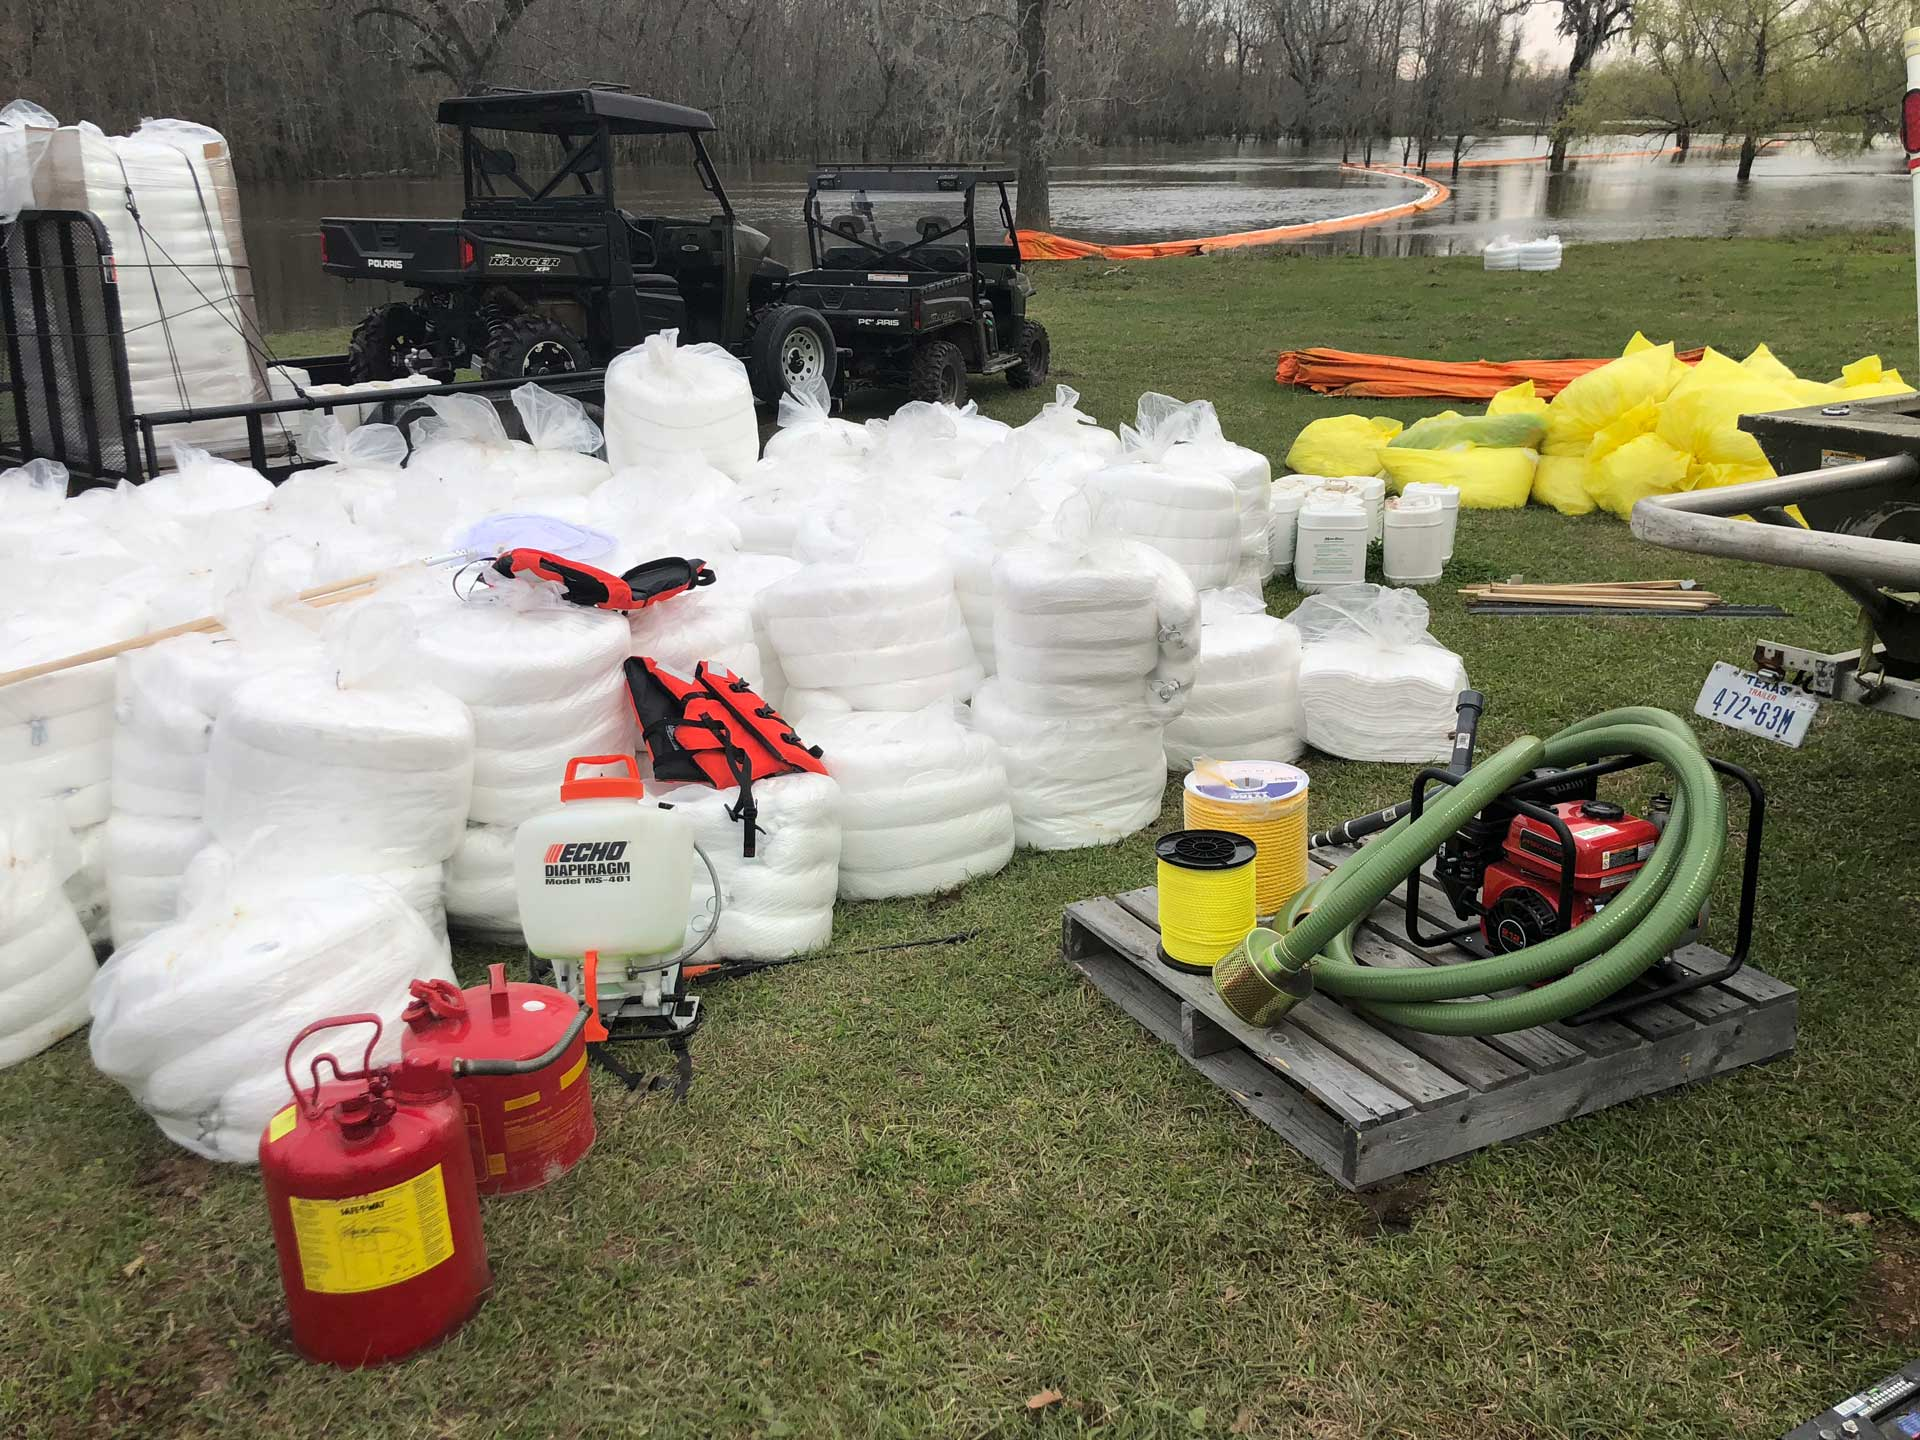 oil spill response equipment in a field with carts